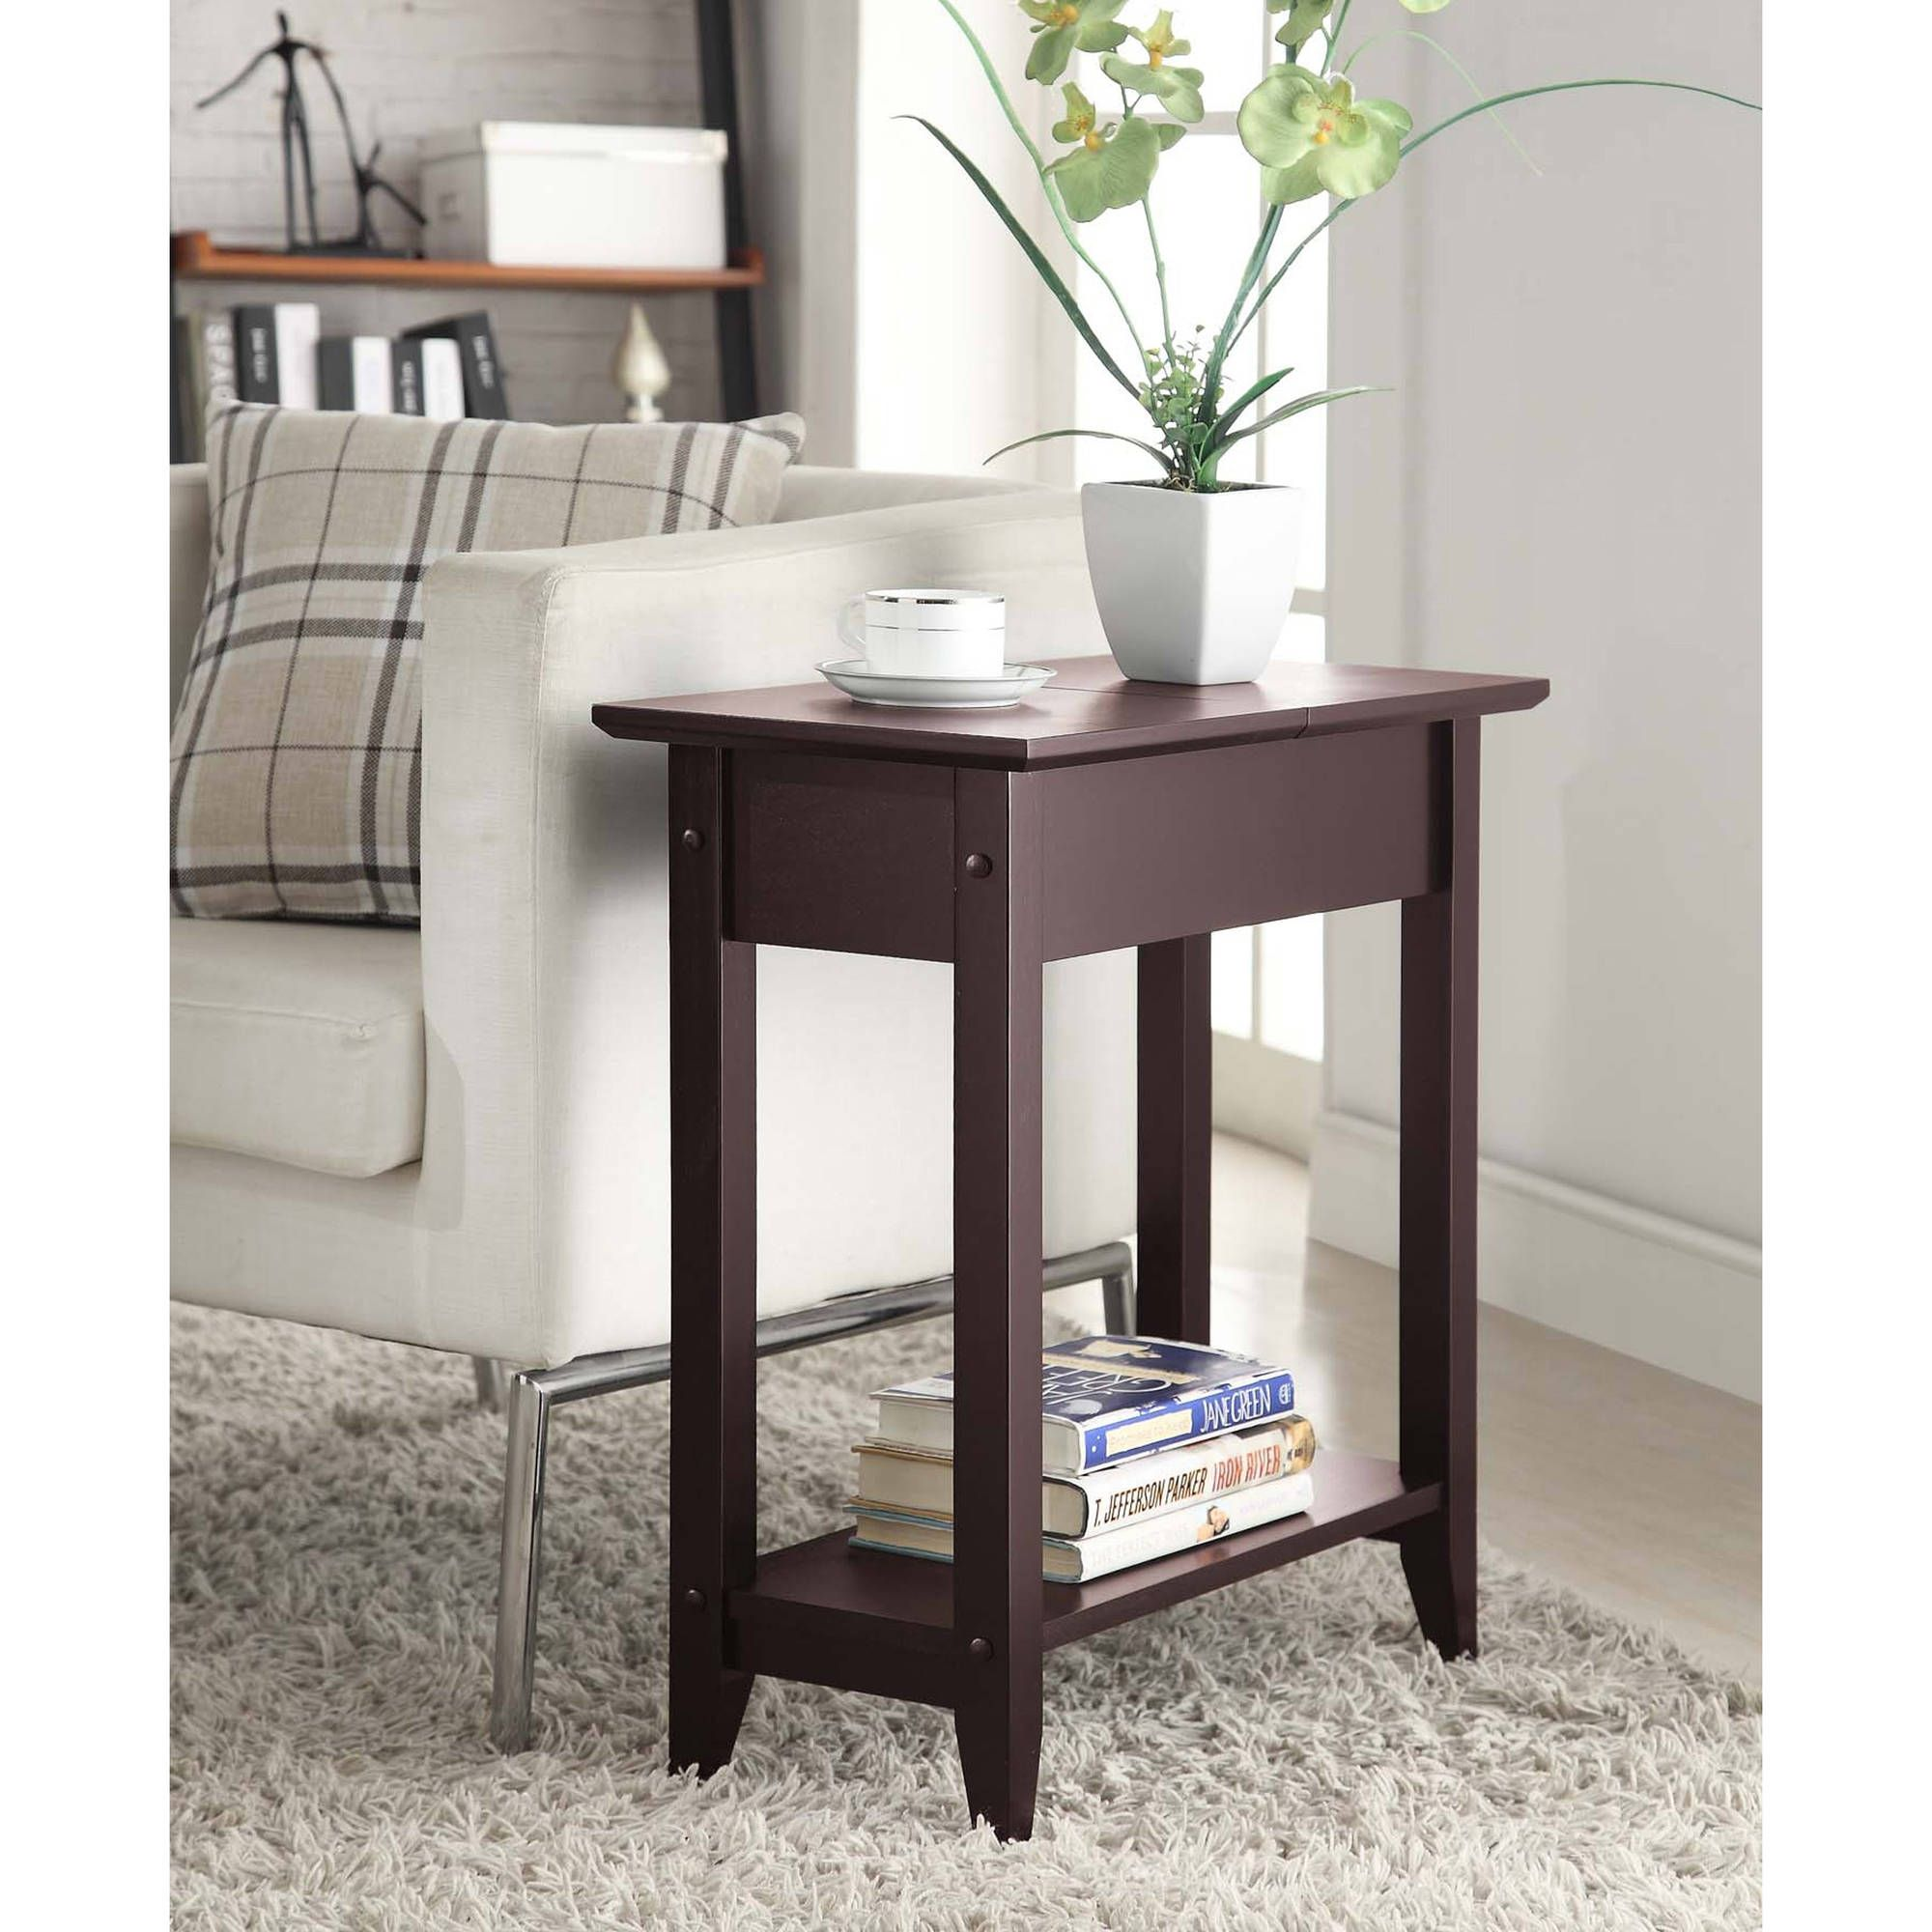 American heritage flip top tall side table multiple colors american heritage flip top tall side table multiple colors geotapseo Images